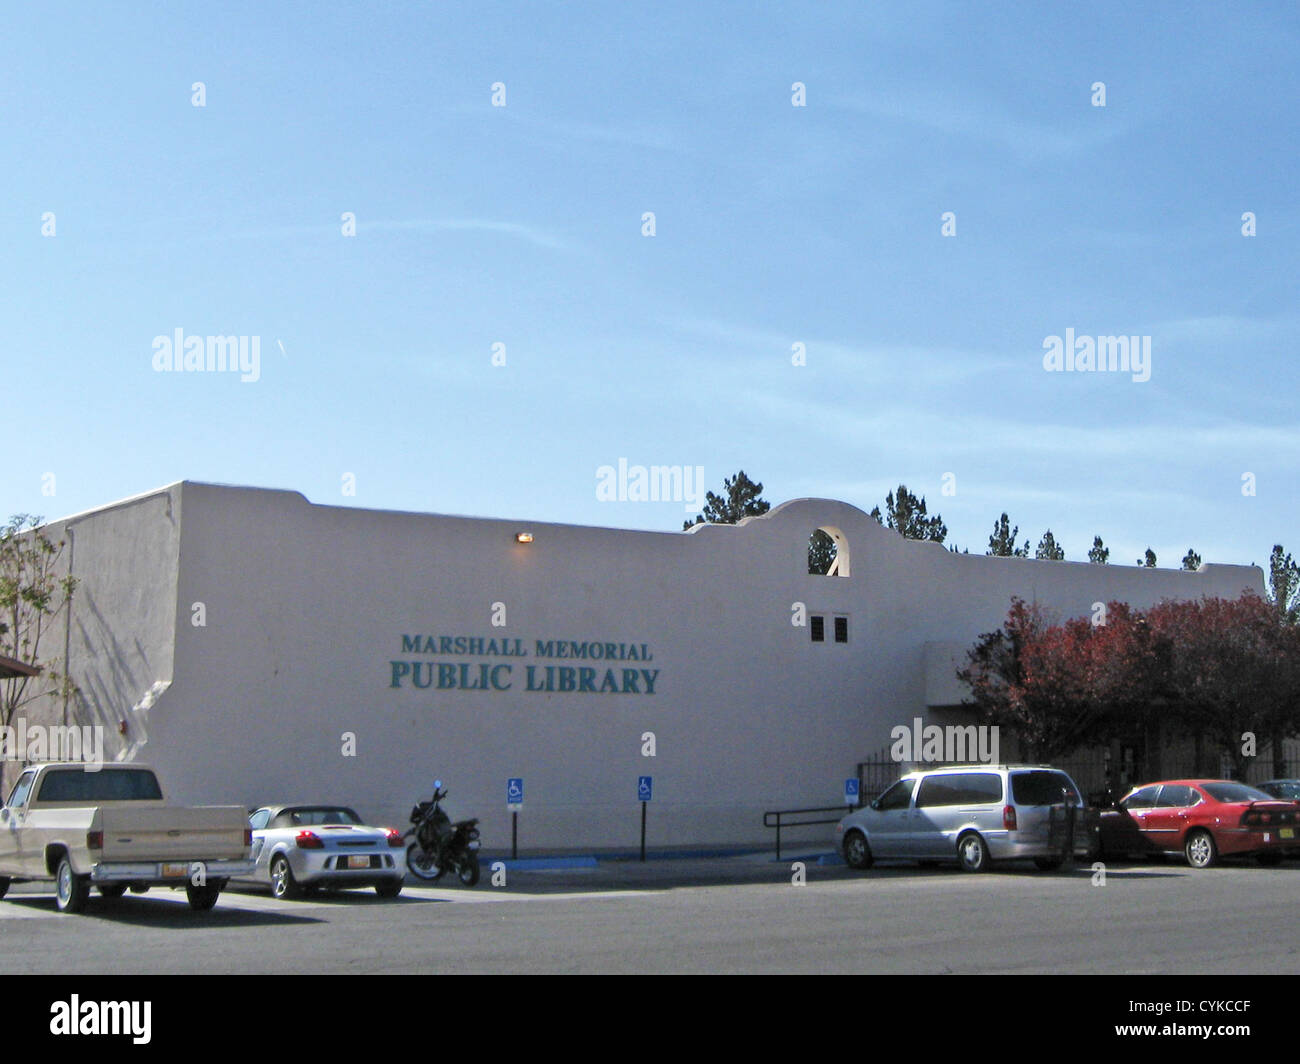 Marshall Memorial Public Library, located at 110 South Diamond Street in Deming, New Mexico. - Stock Image